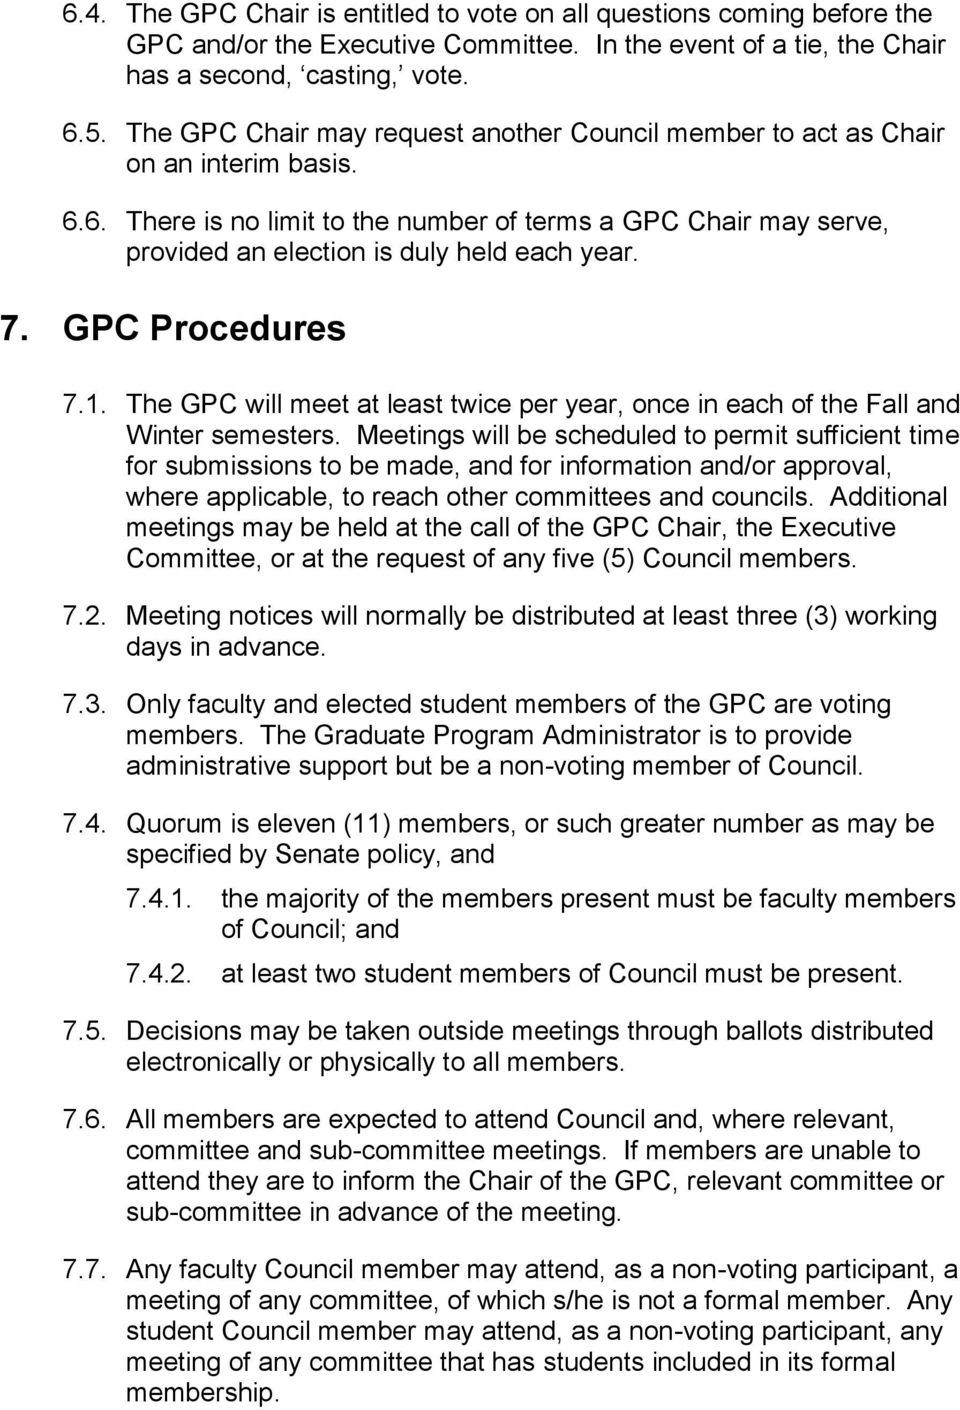 7. GPC Procedures 7.1. The GPC will meet at least twice per year, once in each of the Fall and Winter semesters.